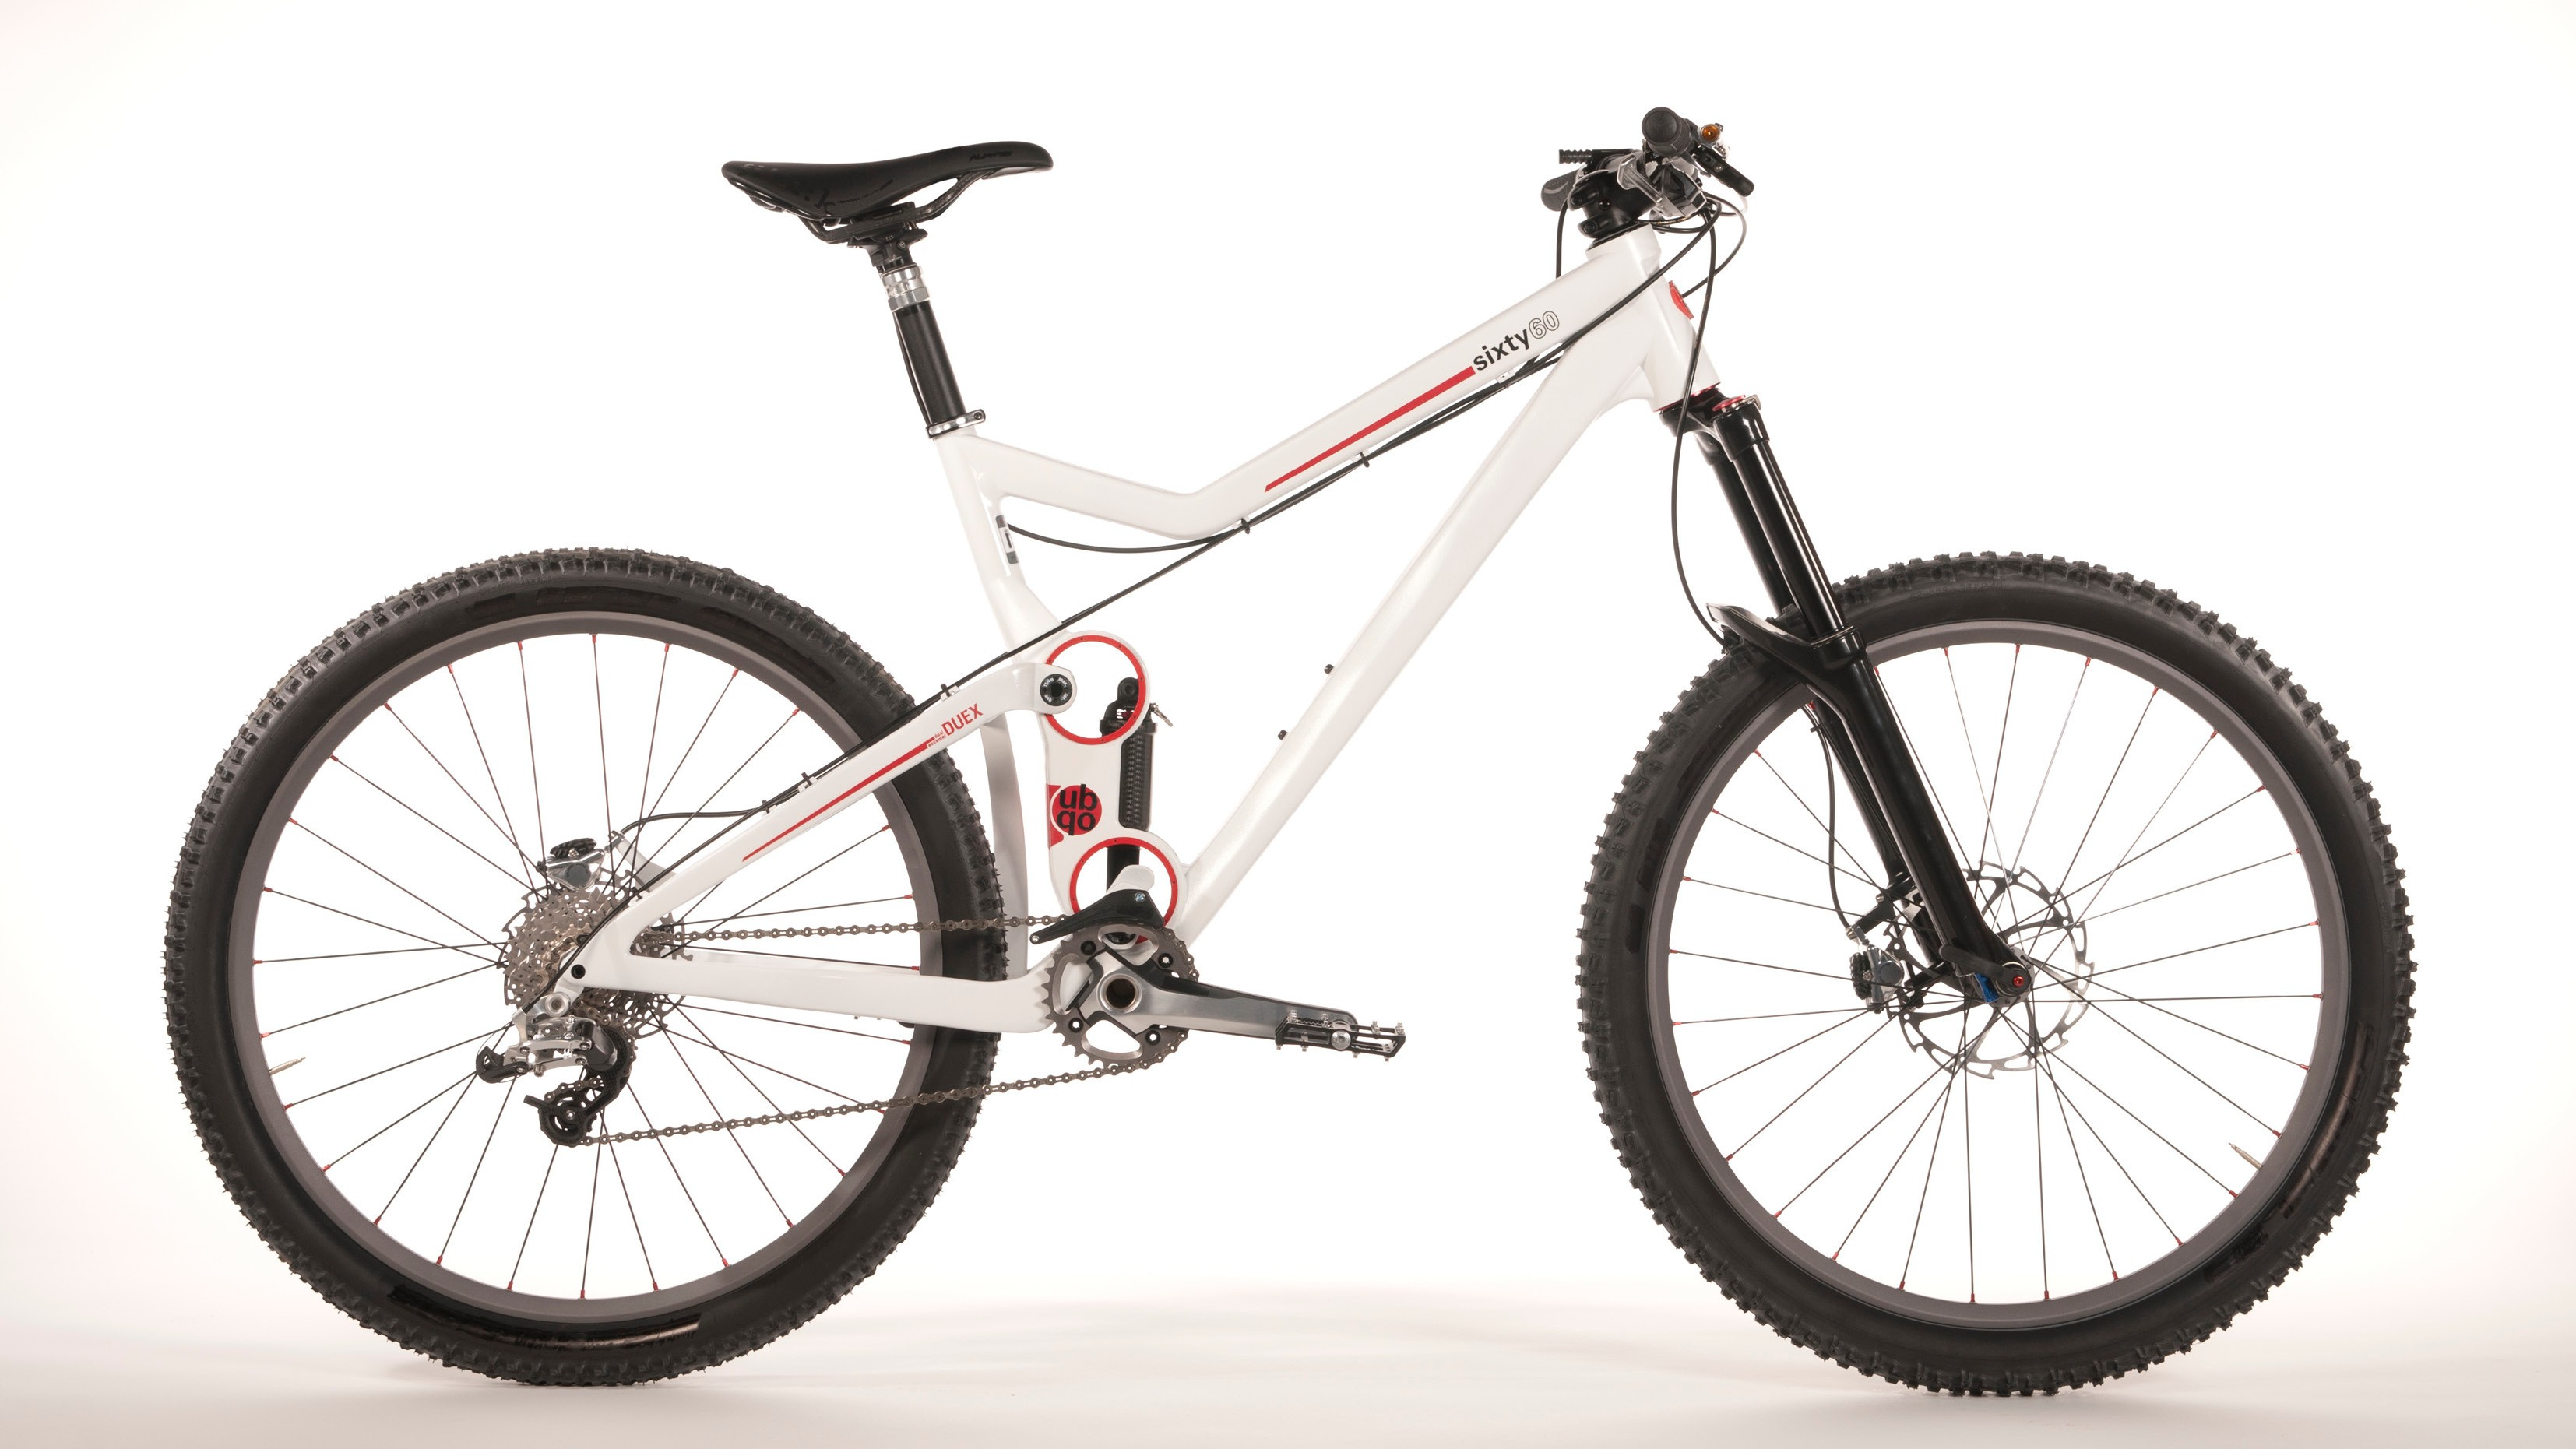 The UbQo concept aims to release pressure on traditional small suspension pivots